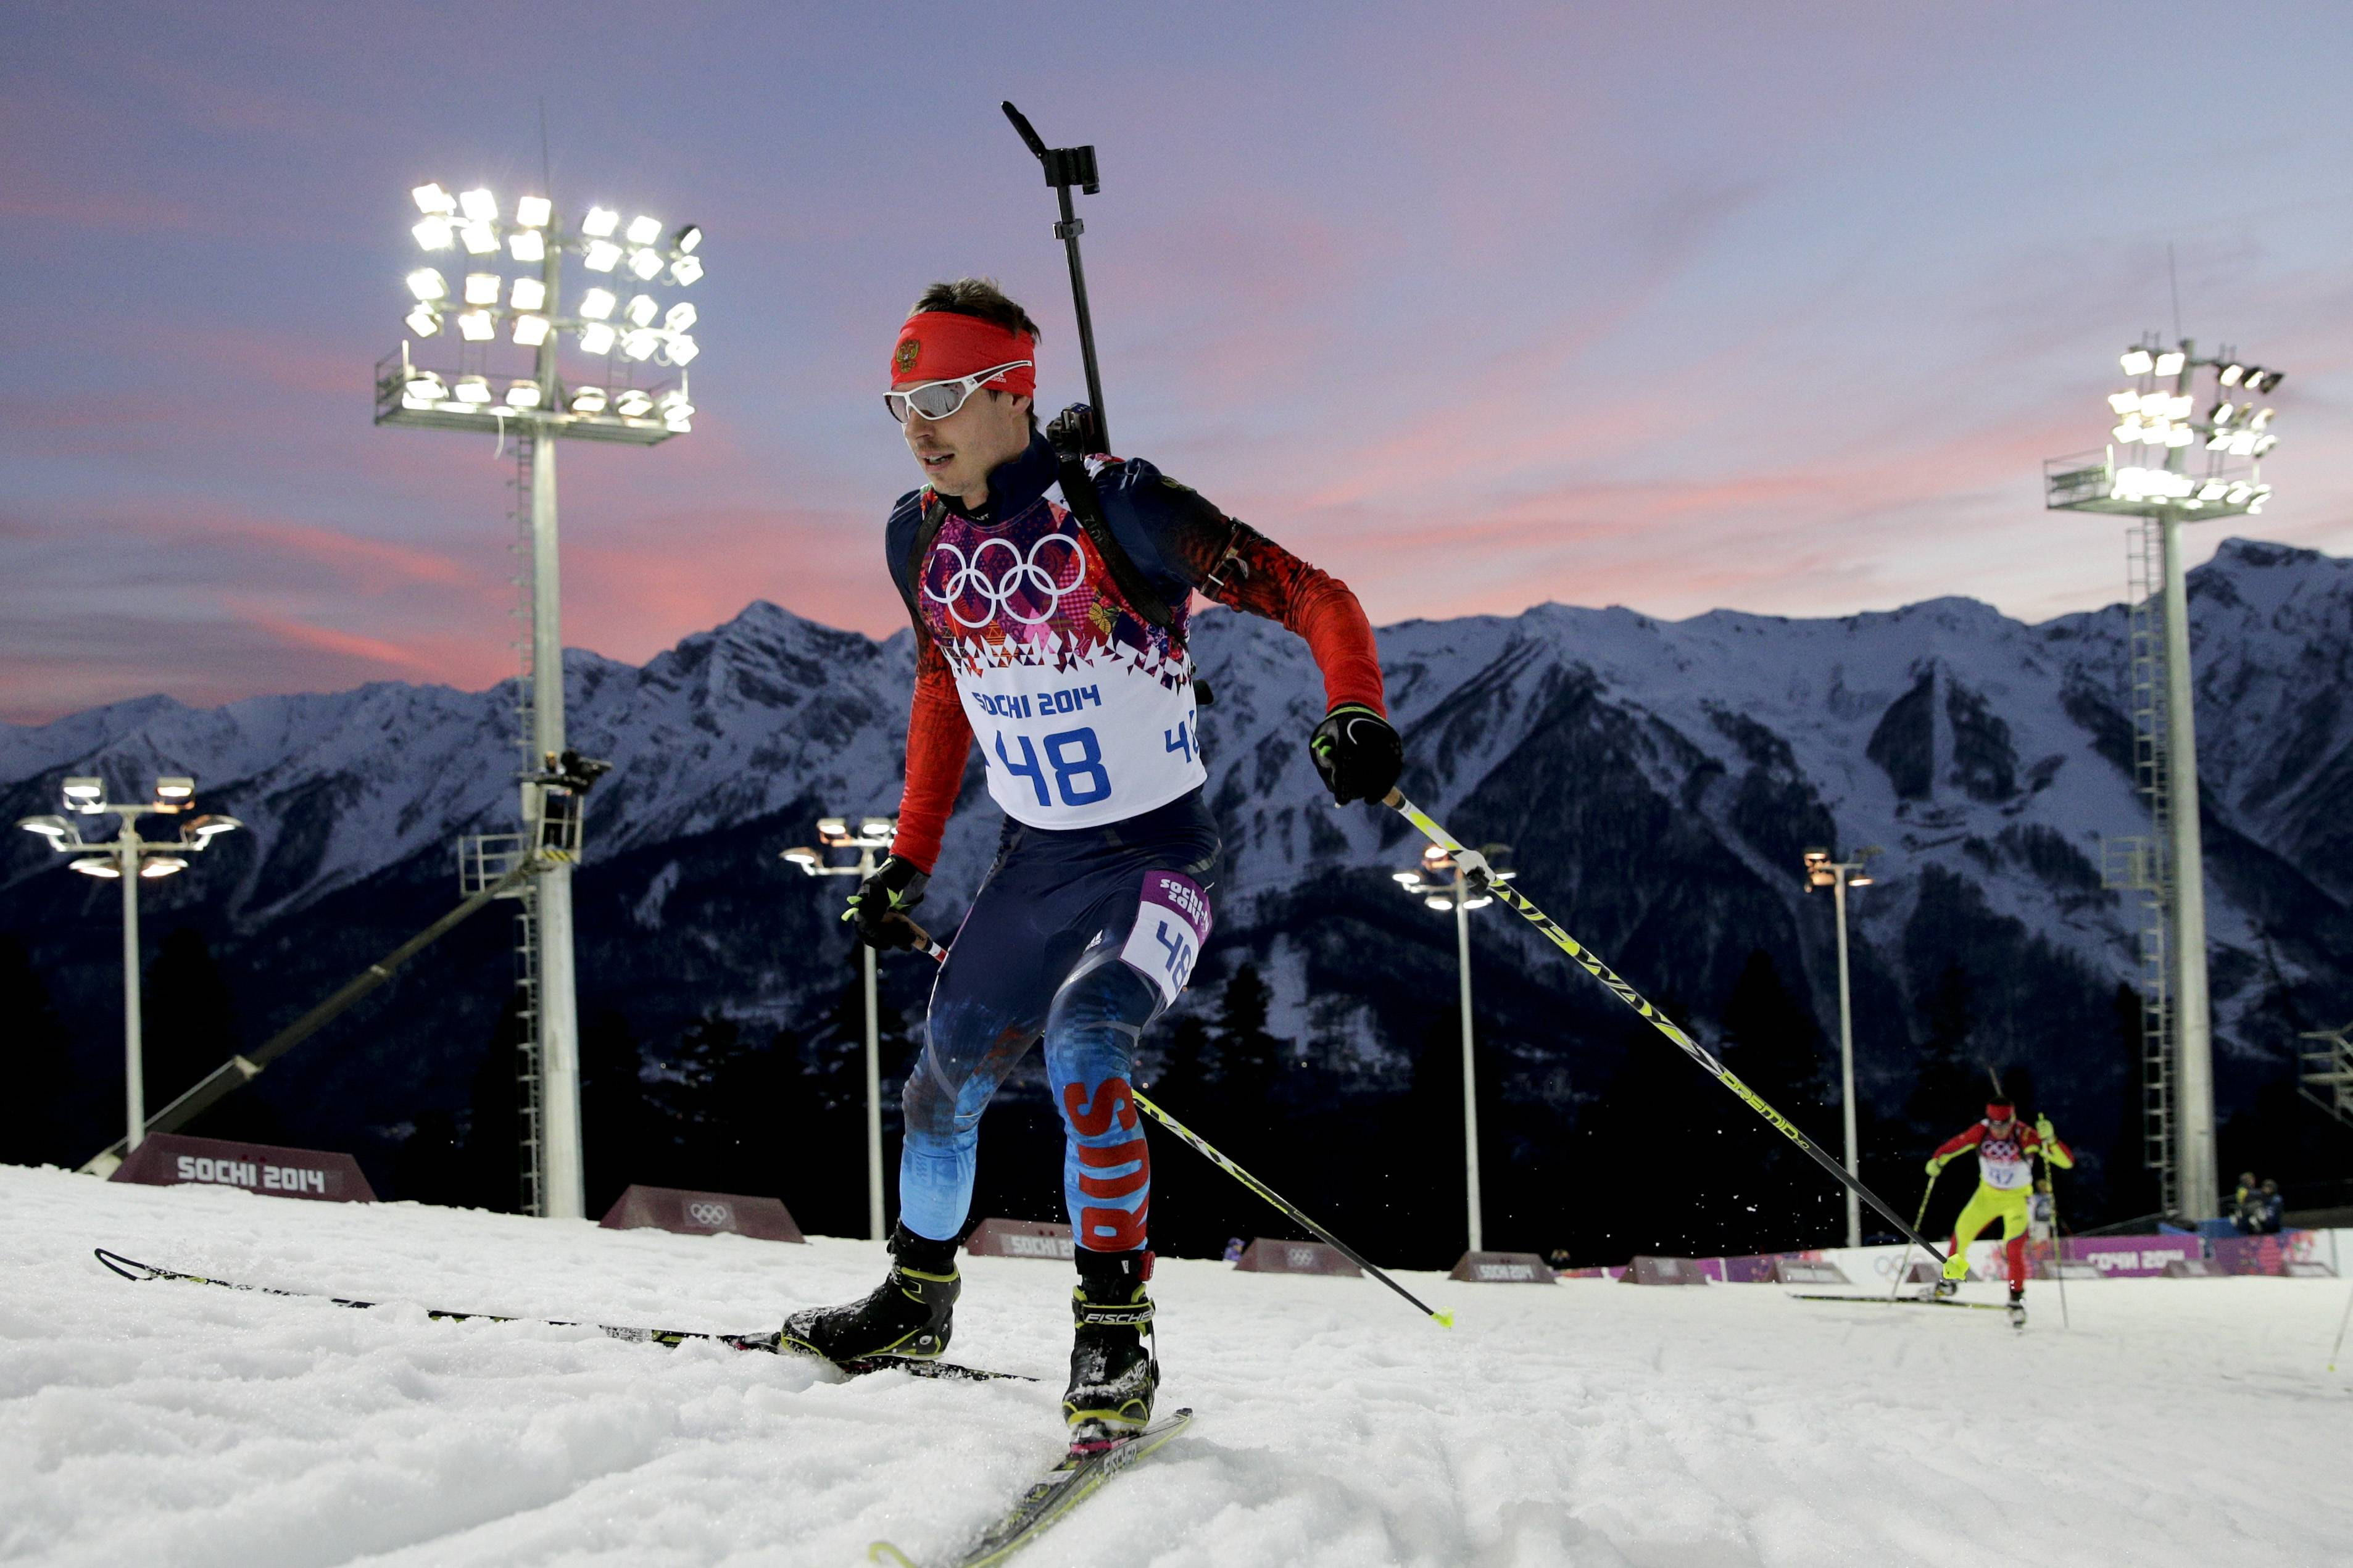 Russia's Yevgeny Ustyugov competes during the men's biathlon 20k individual race.